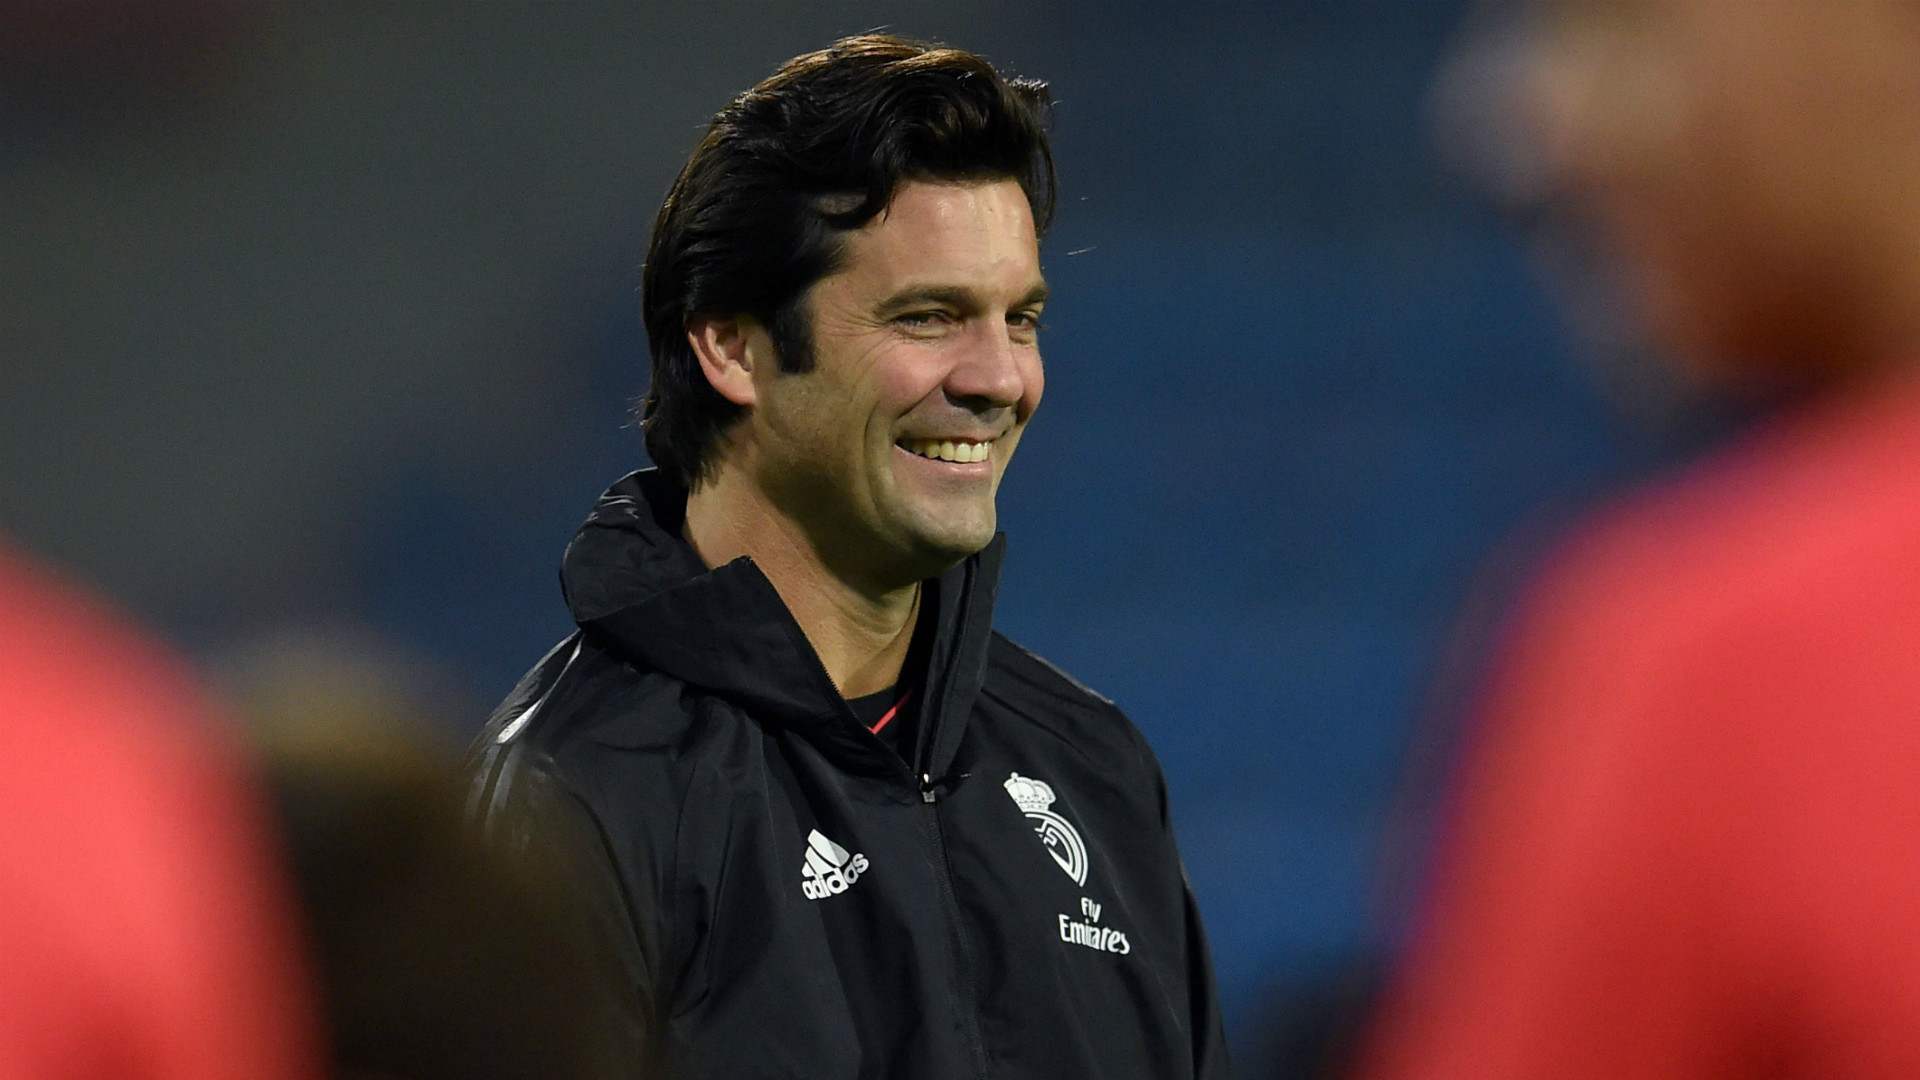 Santiago Solari appointed Real Madrid head coach until 2021